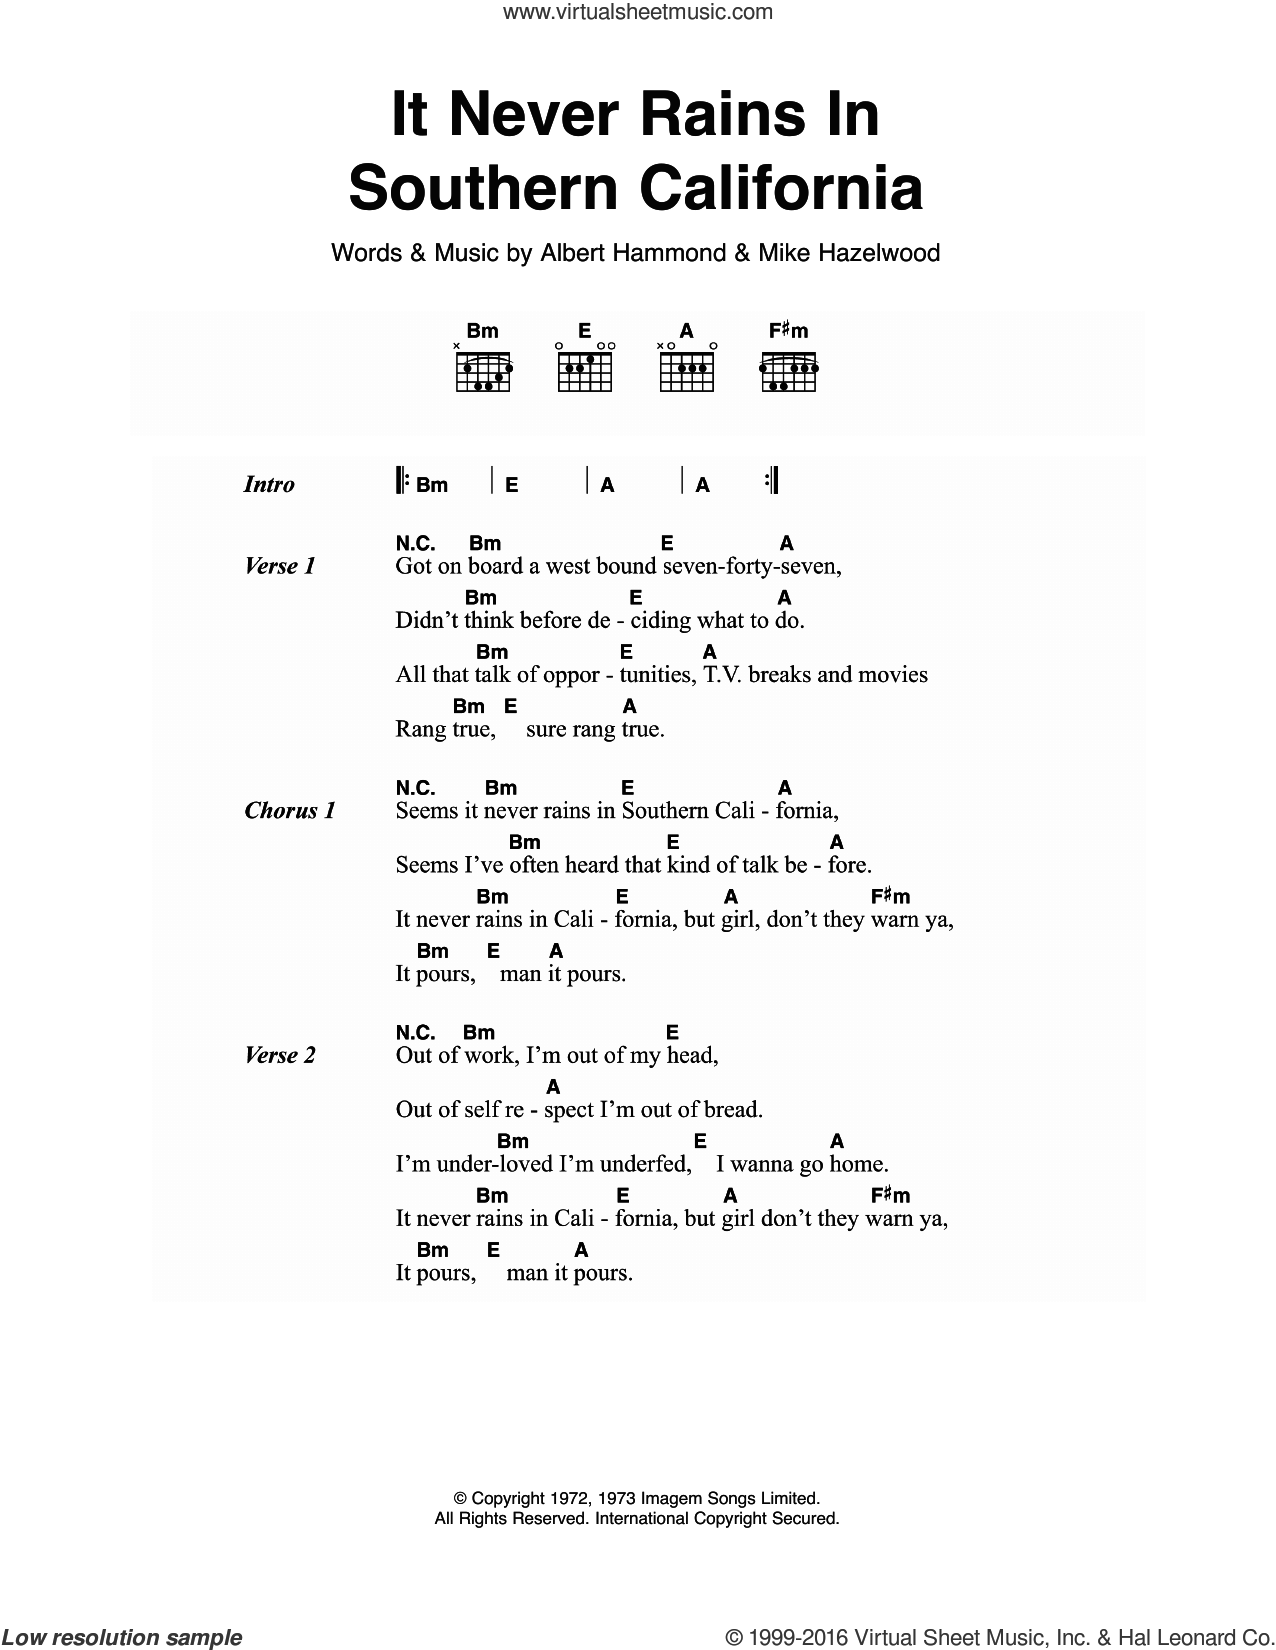 It Never Rains In Southern California sheet music for guitar (chords) by Michael Hazelwood and Albert Hammond. Score Image Preview.